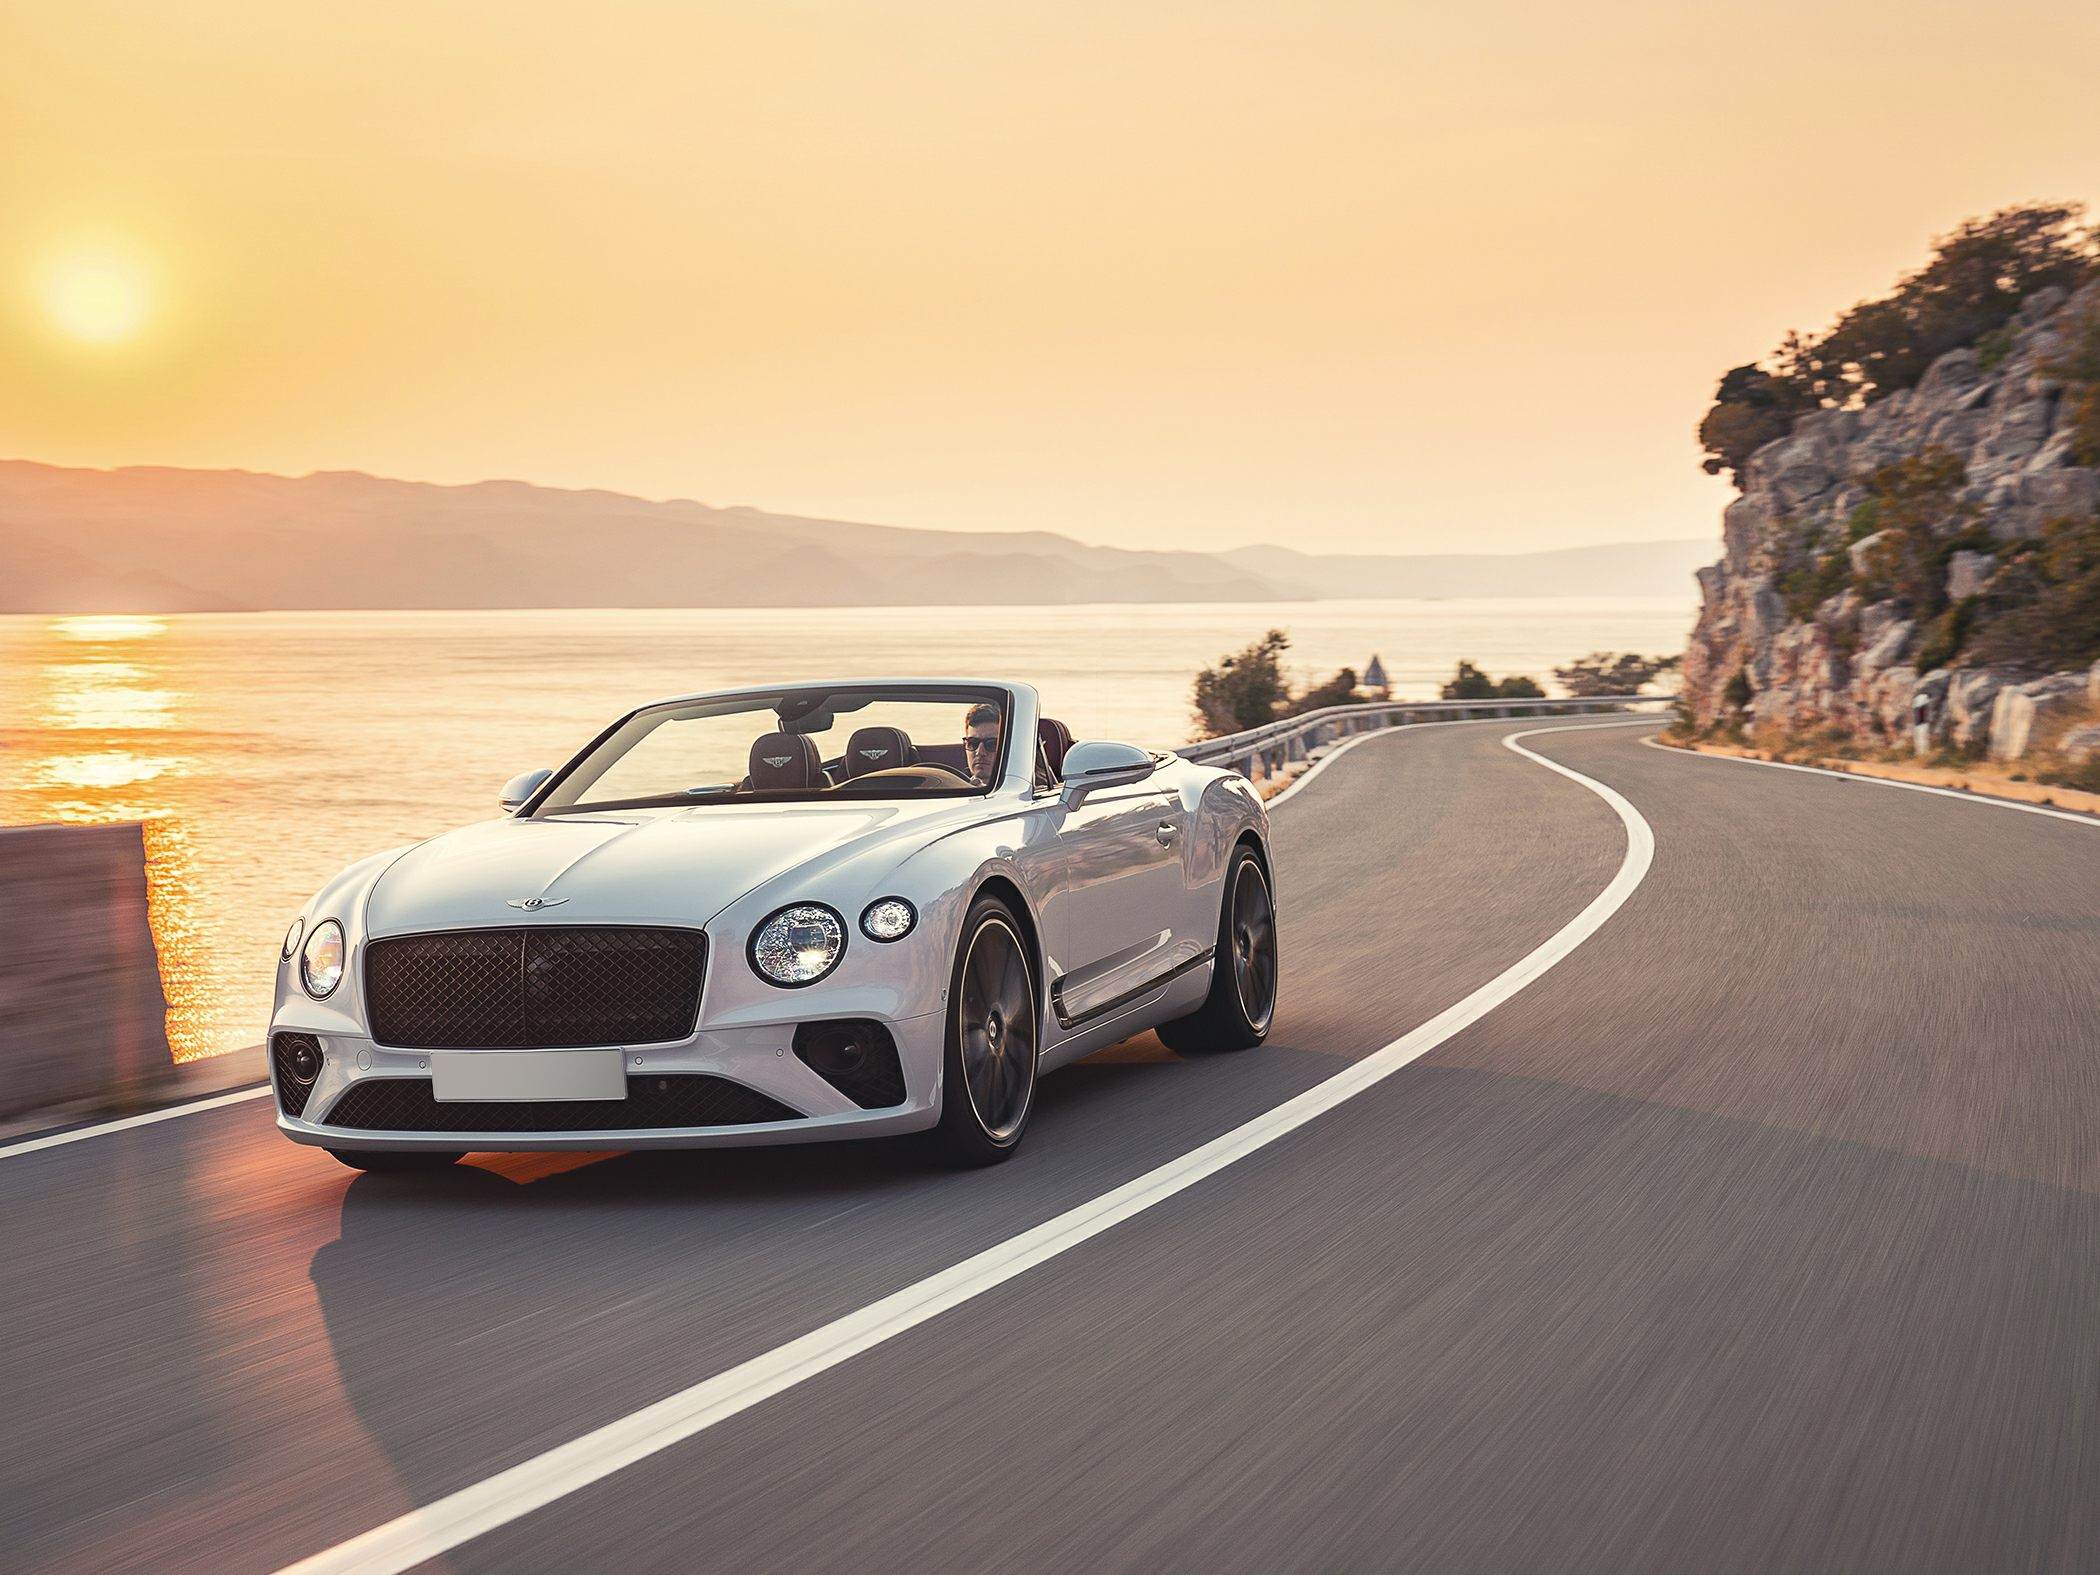 2020 Bentley Continental Gt First Edition 2dr All Wheel Drive Convertible Pricing And Options